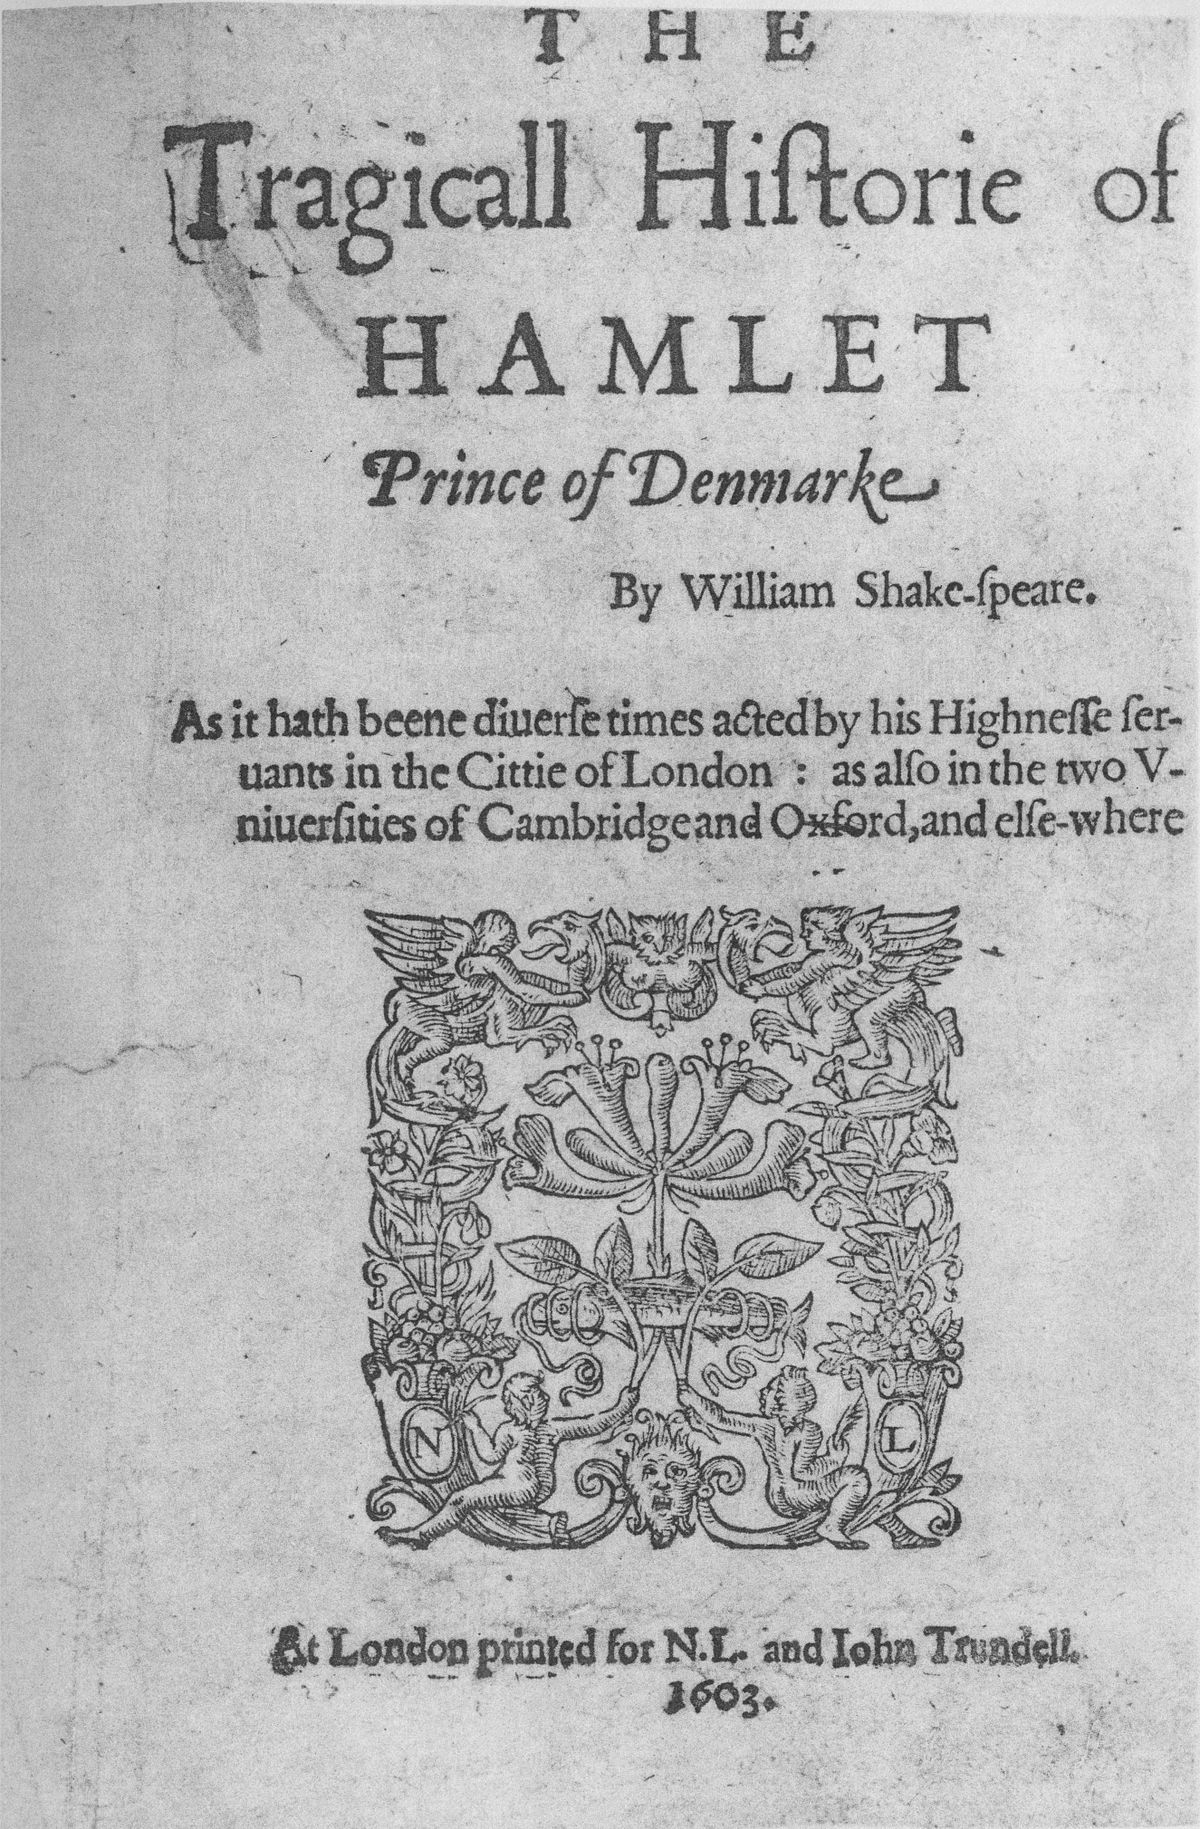 hamlet paper research Essays, term papers, book reports, research papers on shakespeare: hamlet free papers and essays on hamlet and revenge theme we provide free model essays on shakespeare: hamlet, hamlet and revenge theme reports, and term paper samples related to hamlet and revenge theme.